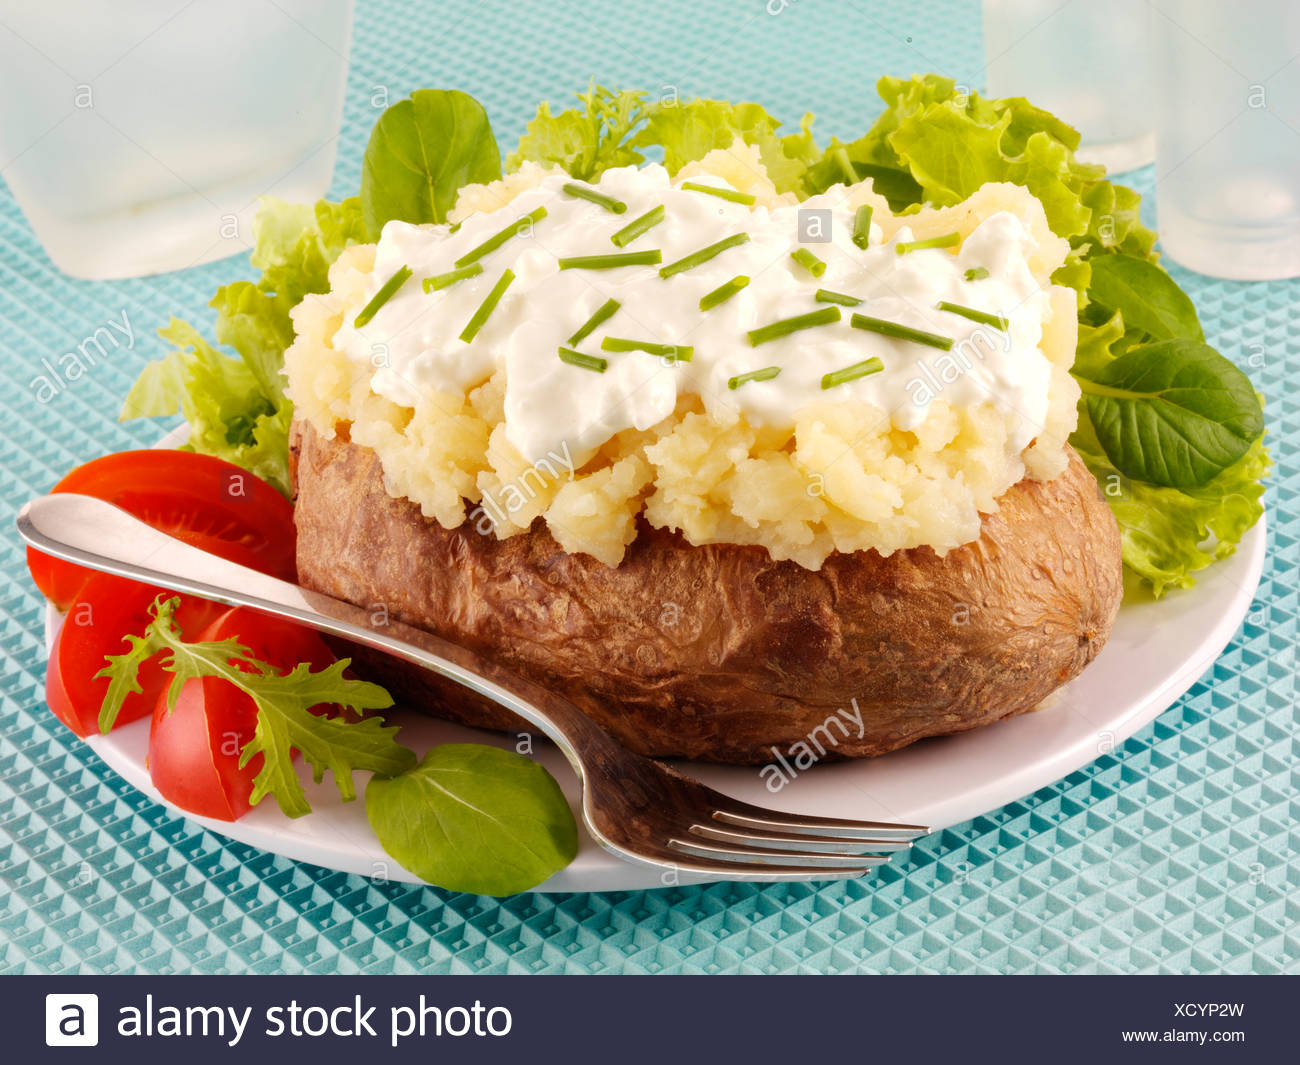 Outstanding Baked Potato With Cottage Cheese And Chives Stock Photo Interior Design Ideas Gentotryabchikinfo